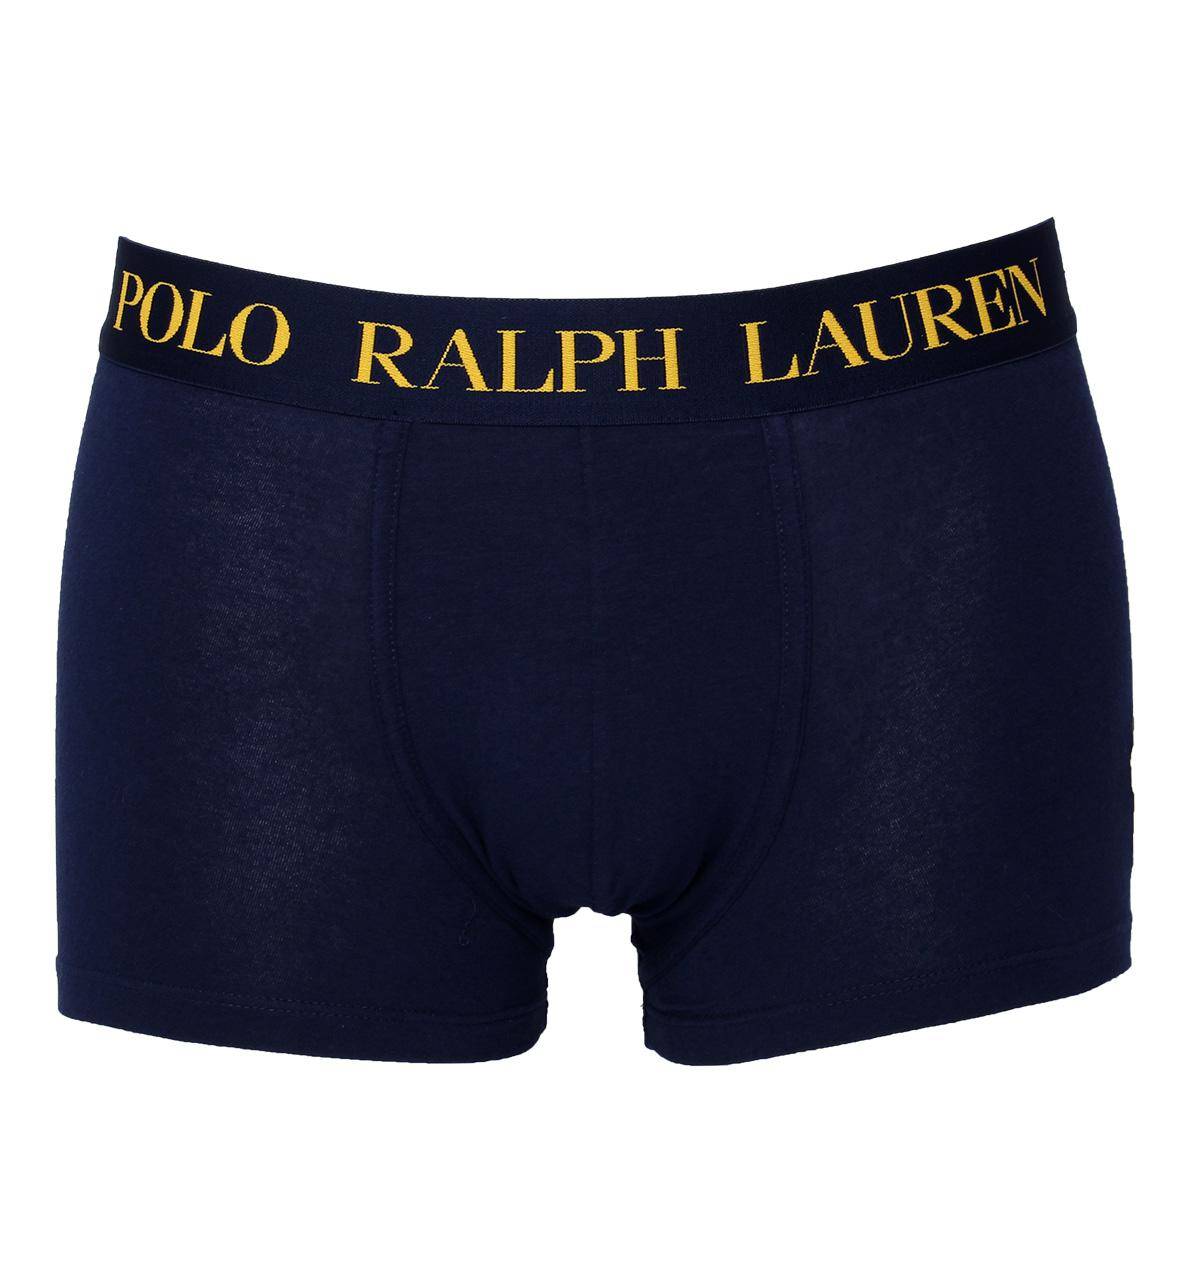 3 Pack Trunks in White/Red/Navy - Red white navy Polo Ralph Lauren Discount Best Prices Multi Coloured IP80c